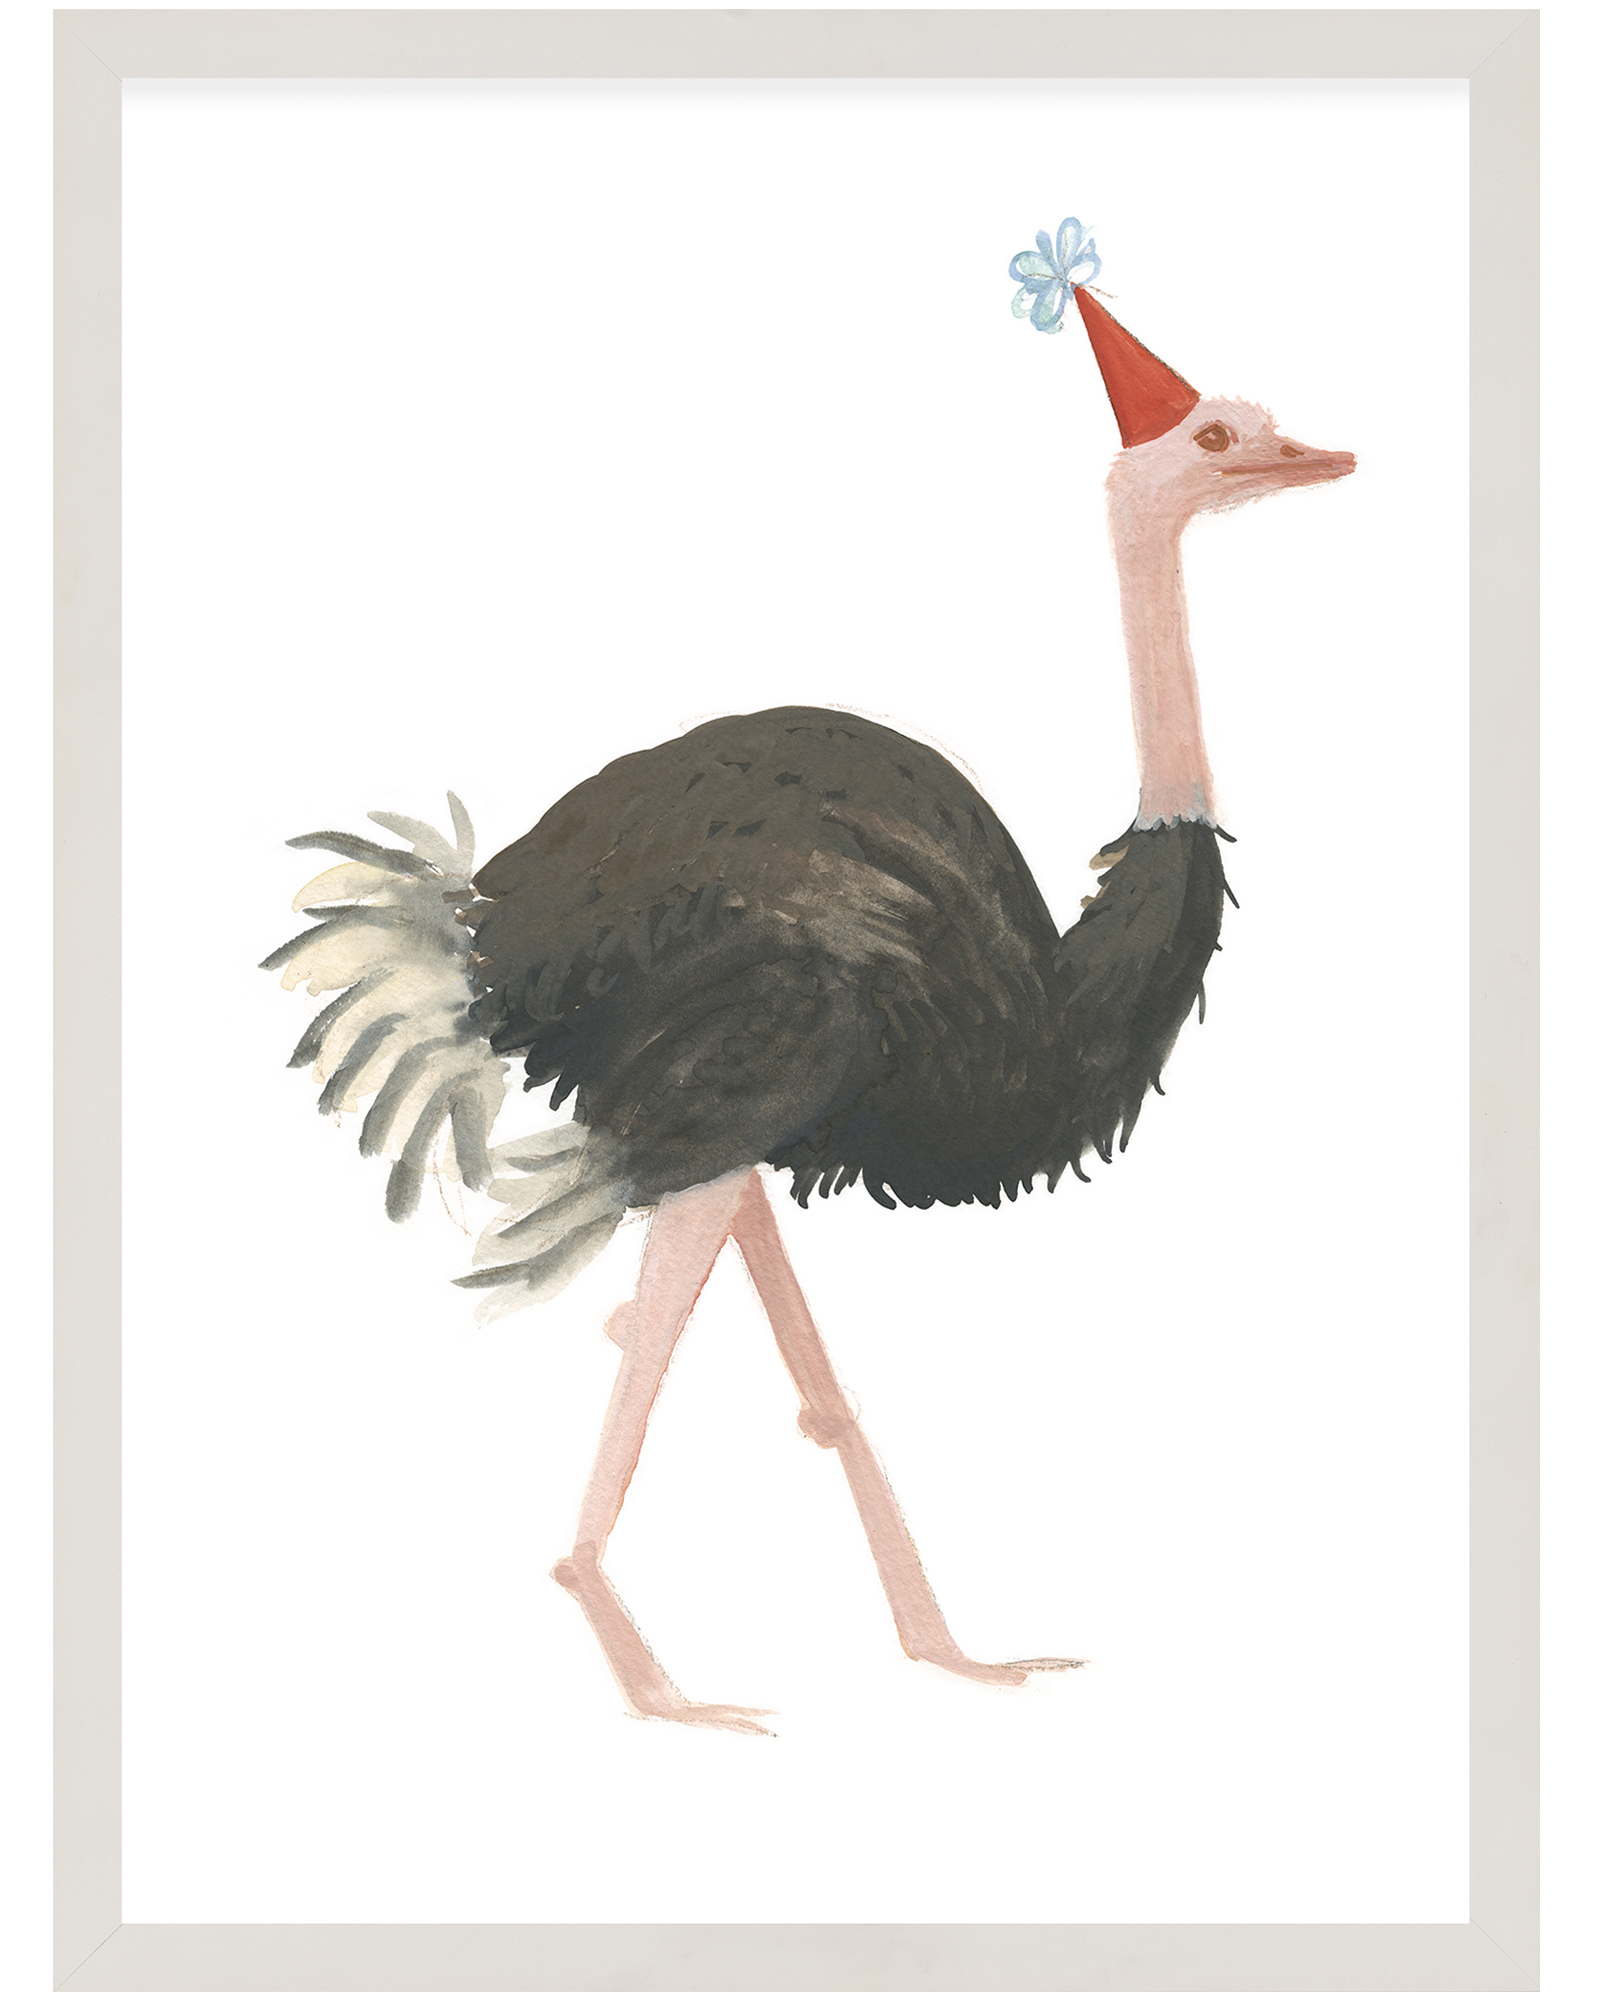 """Party Animals - Ostrich"" by Fours Are Yellow ,"